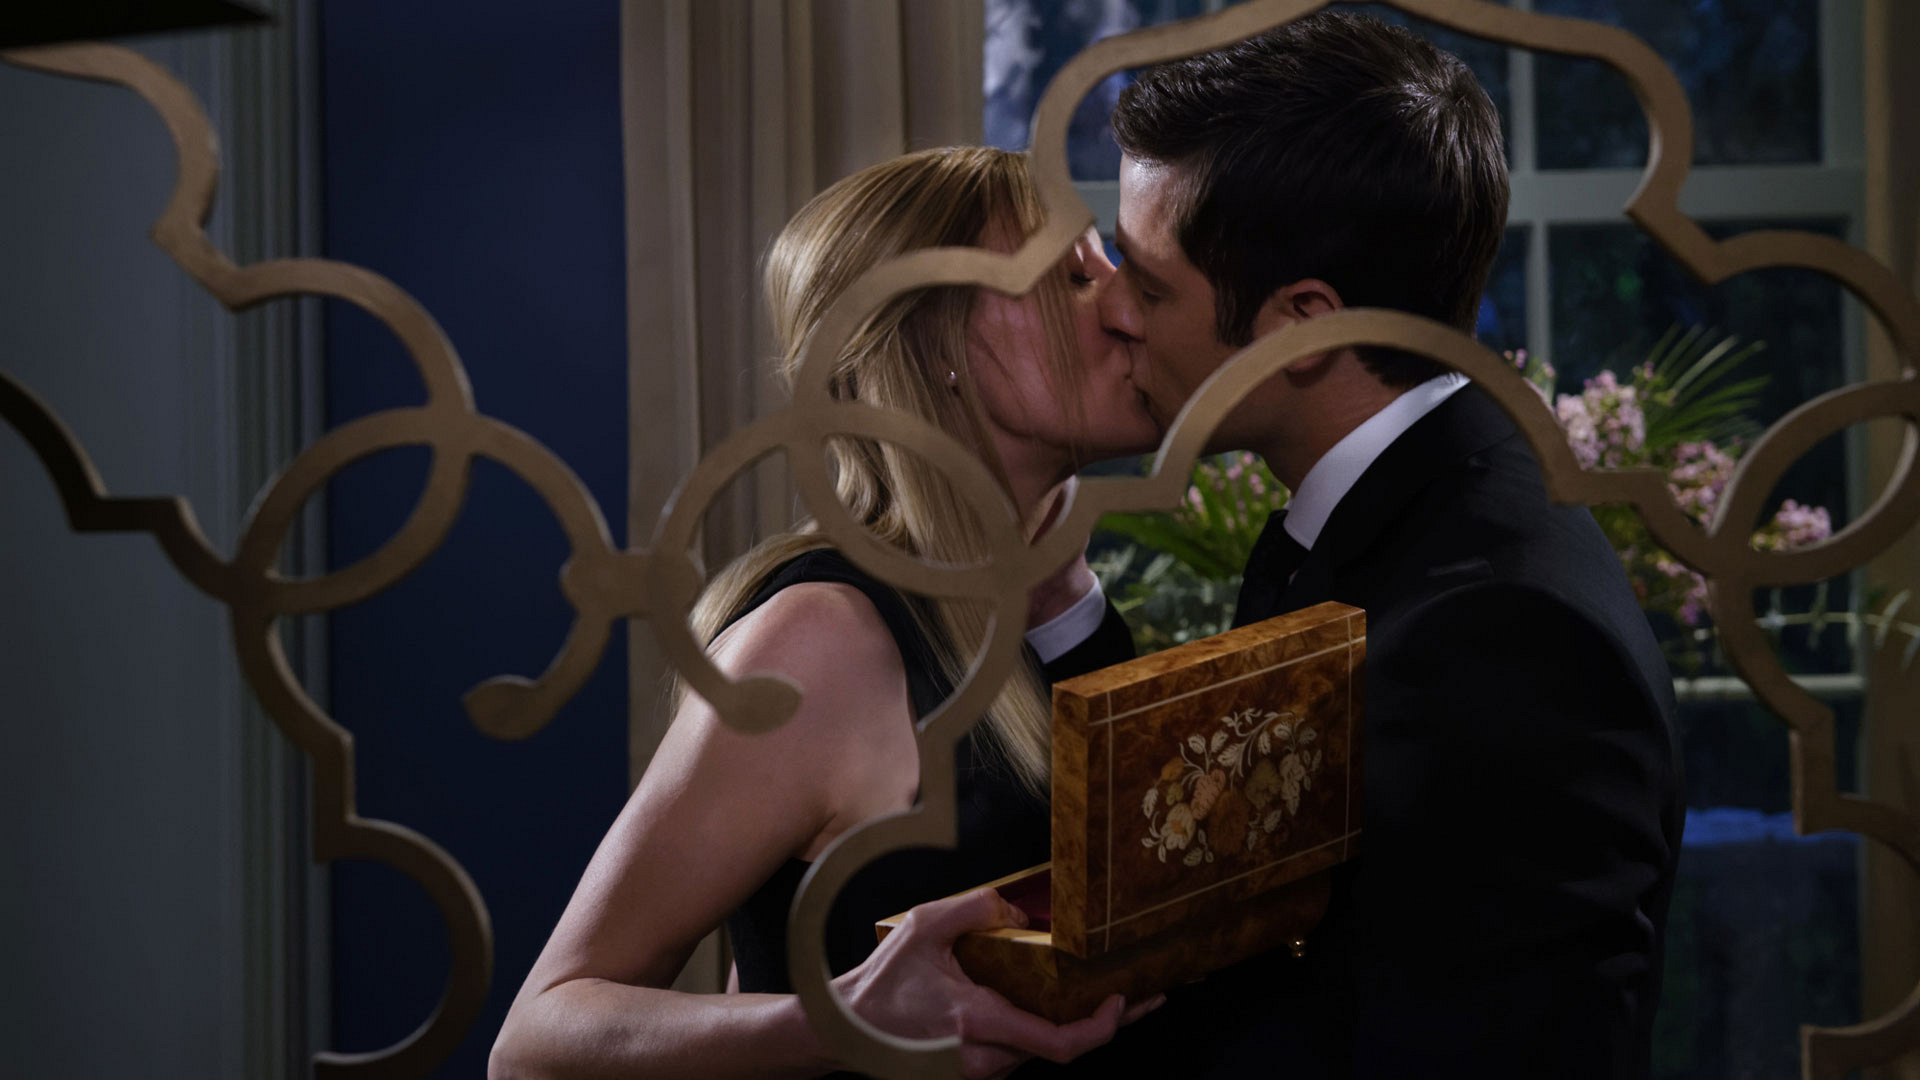 Alison and Tom share a kiss at the Hawthorne home.